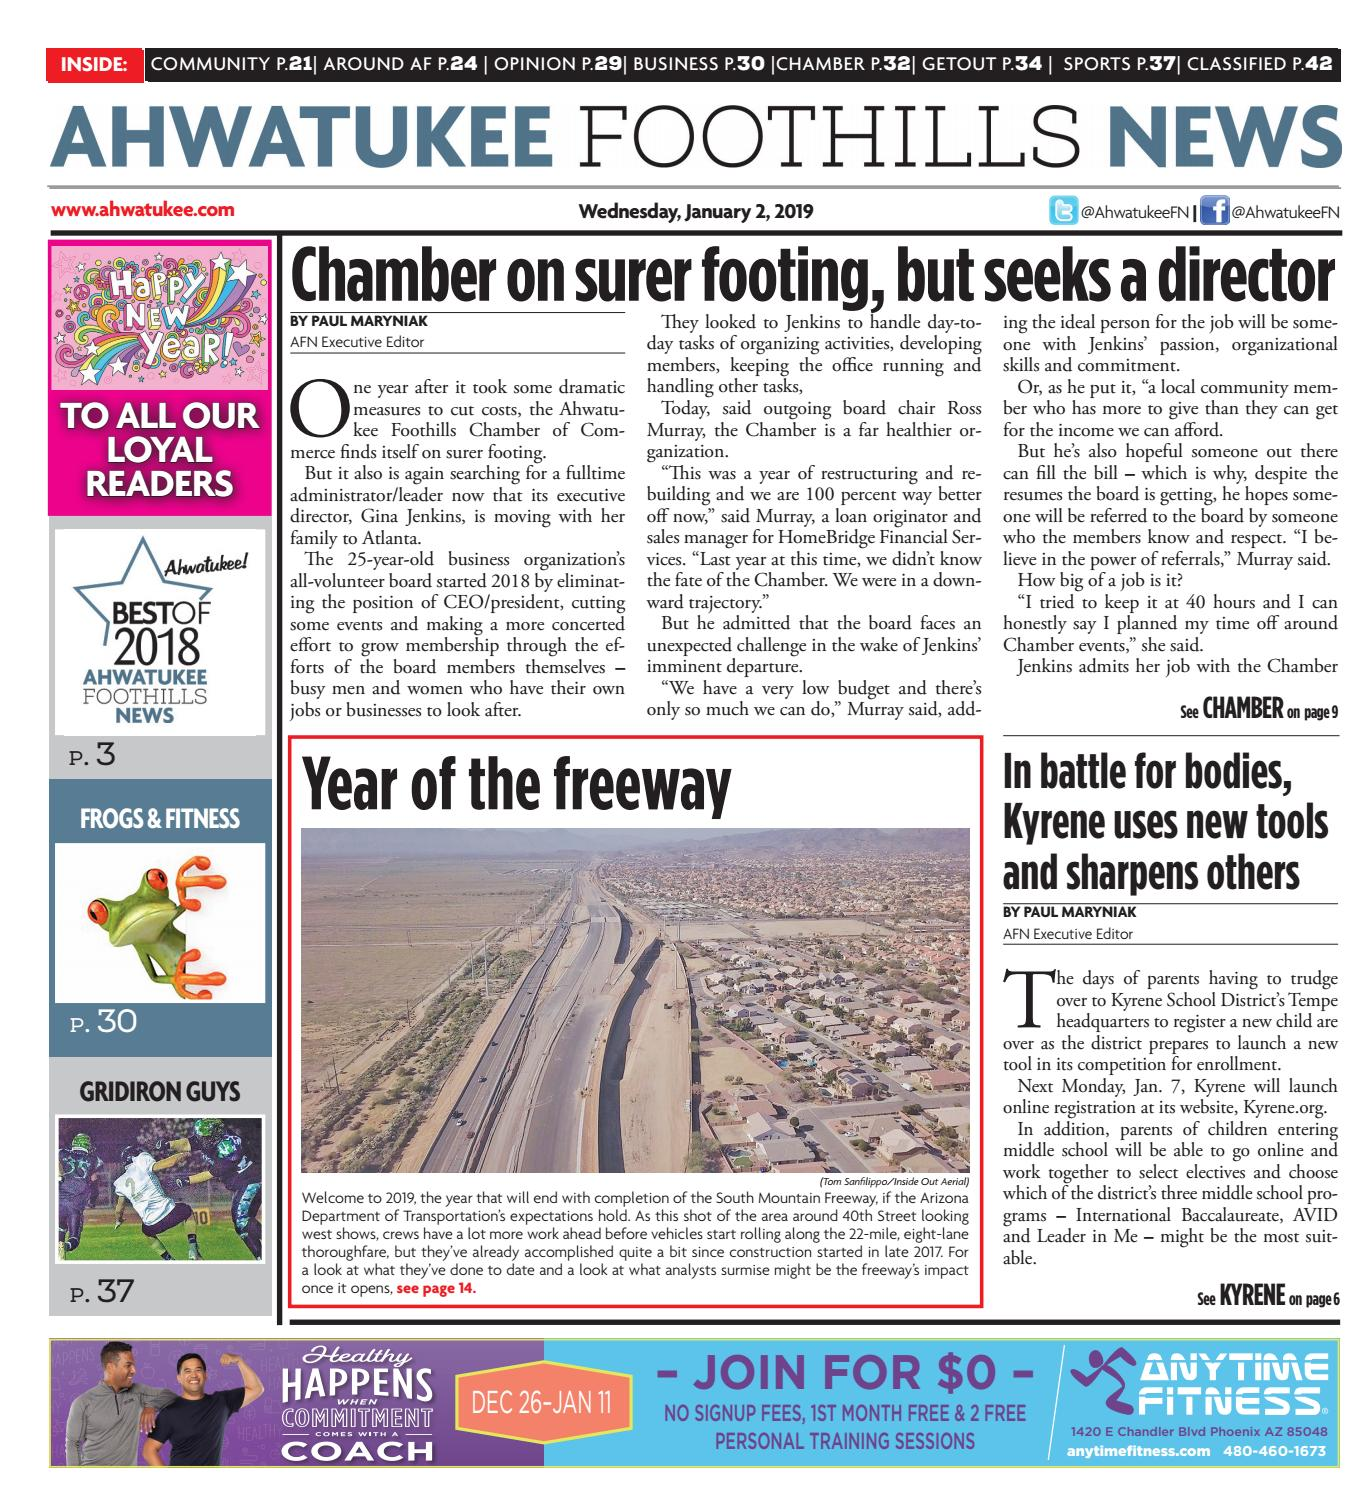 51cd29a27 Ahwatukee Foothills News - January 2 2018 by Times Media Group - issuu